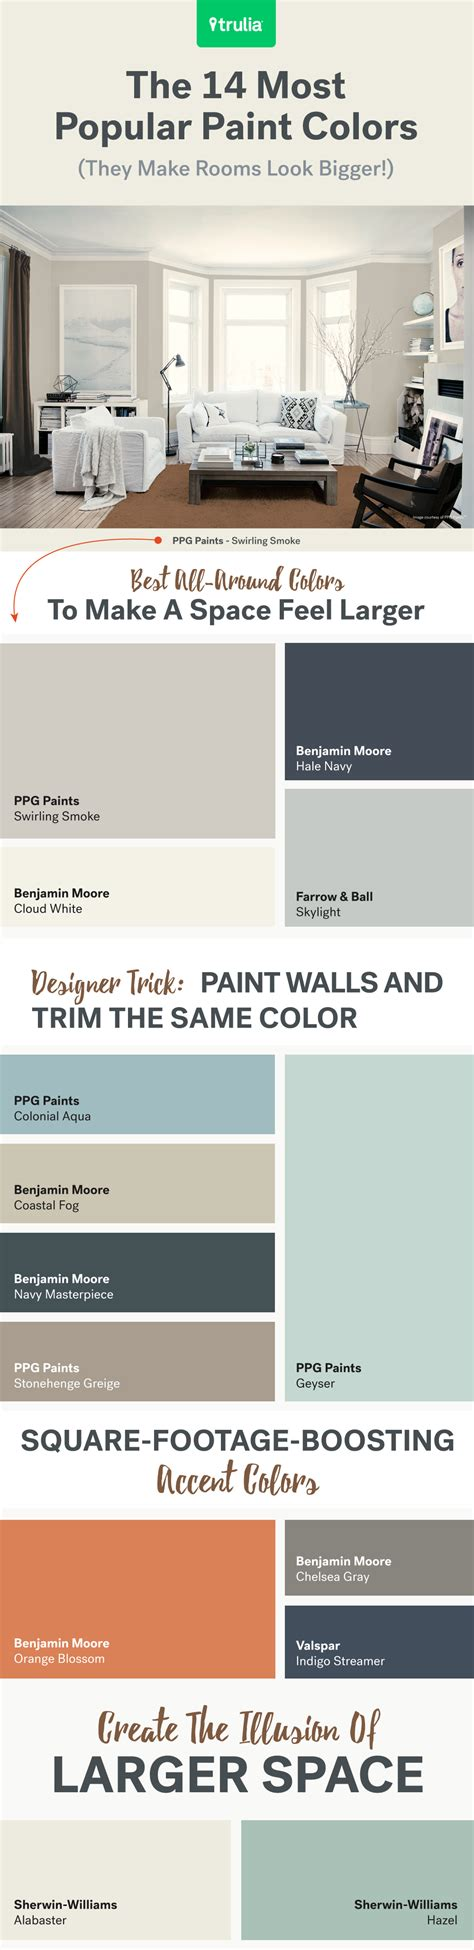 small bedroom paint colors 14 popular paint colors for small rooms at home